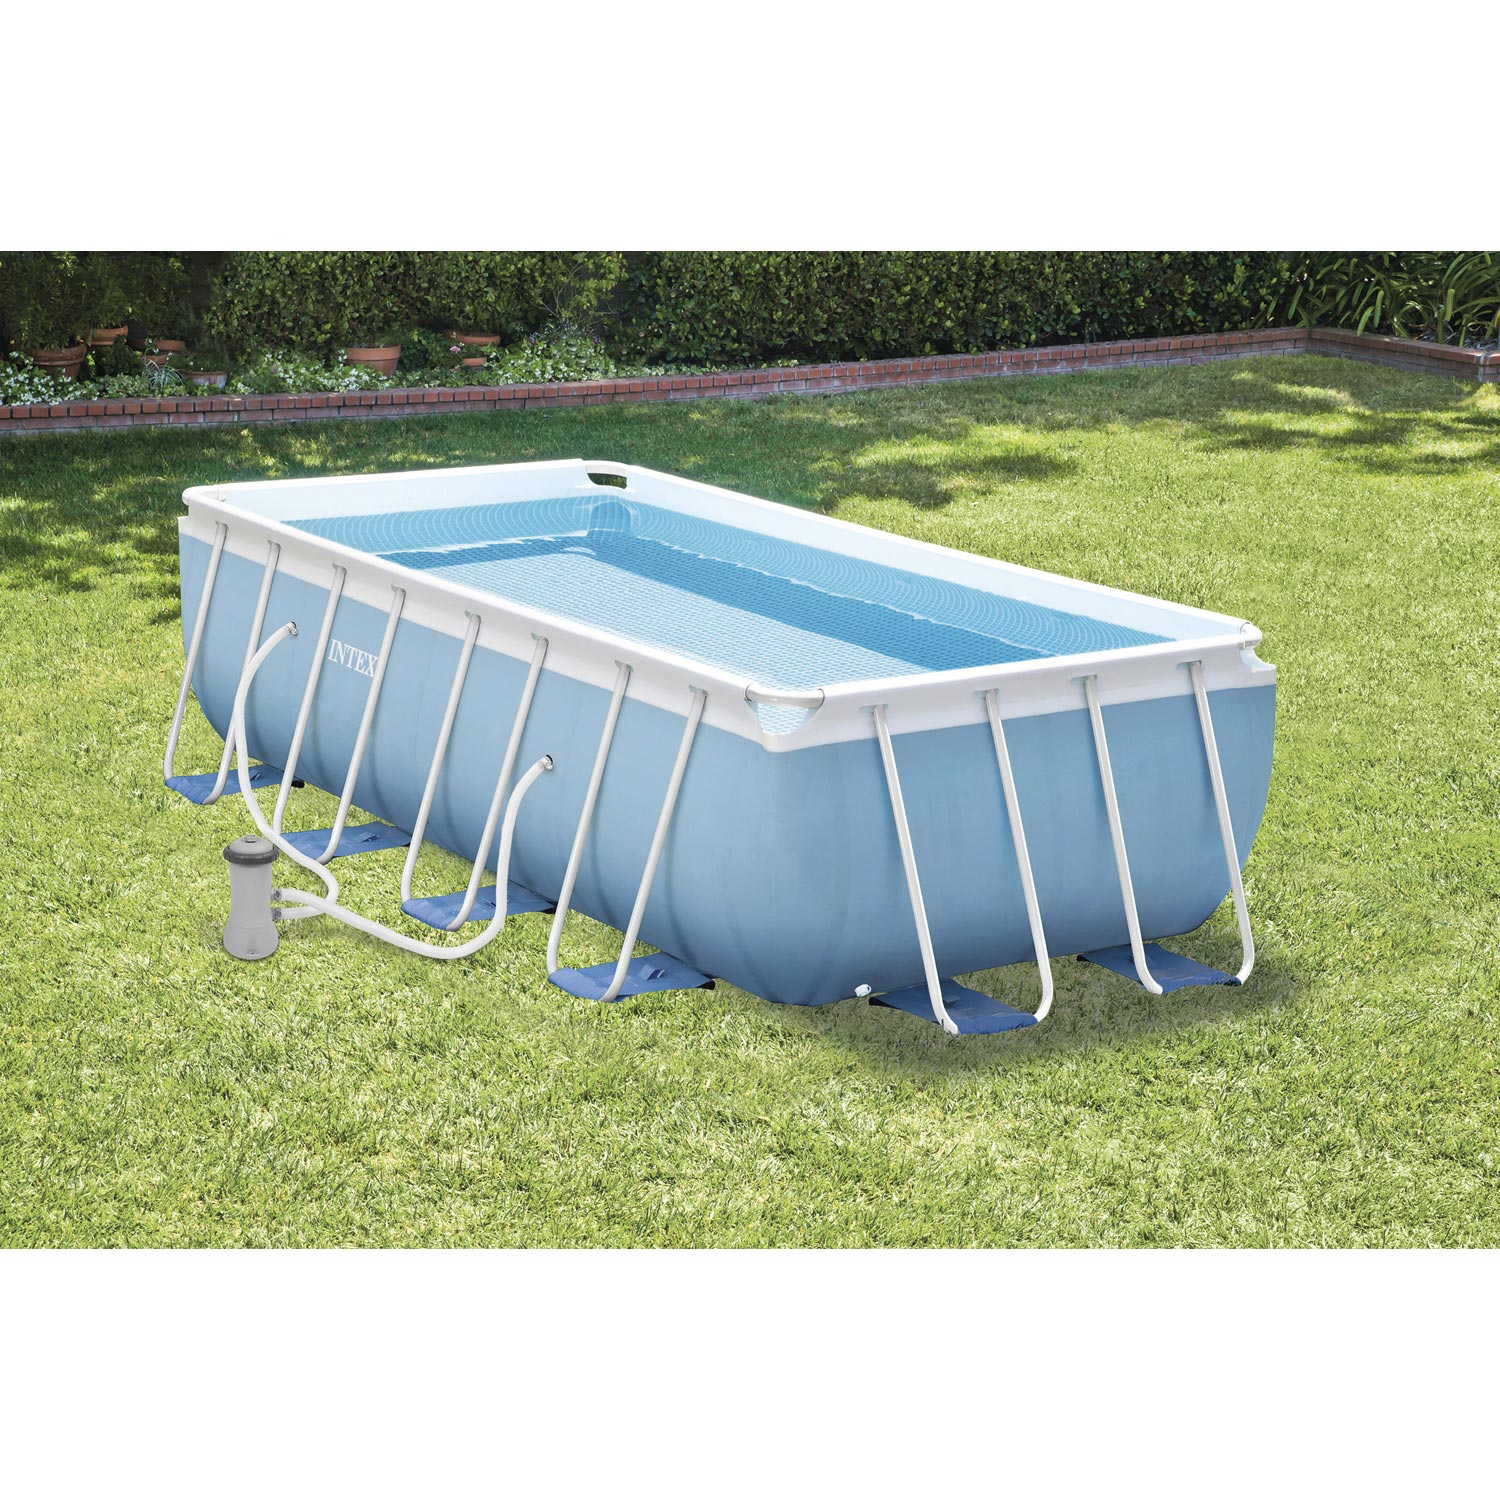 Piscine hors sol autoportante tubulaire prism frame intex for Piscina autoportante